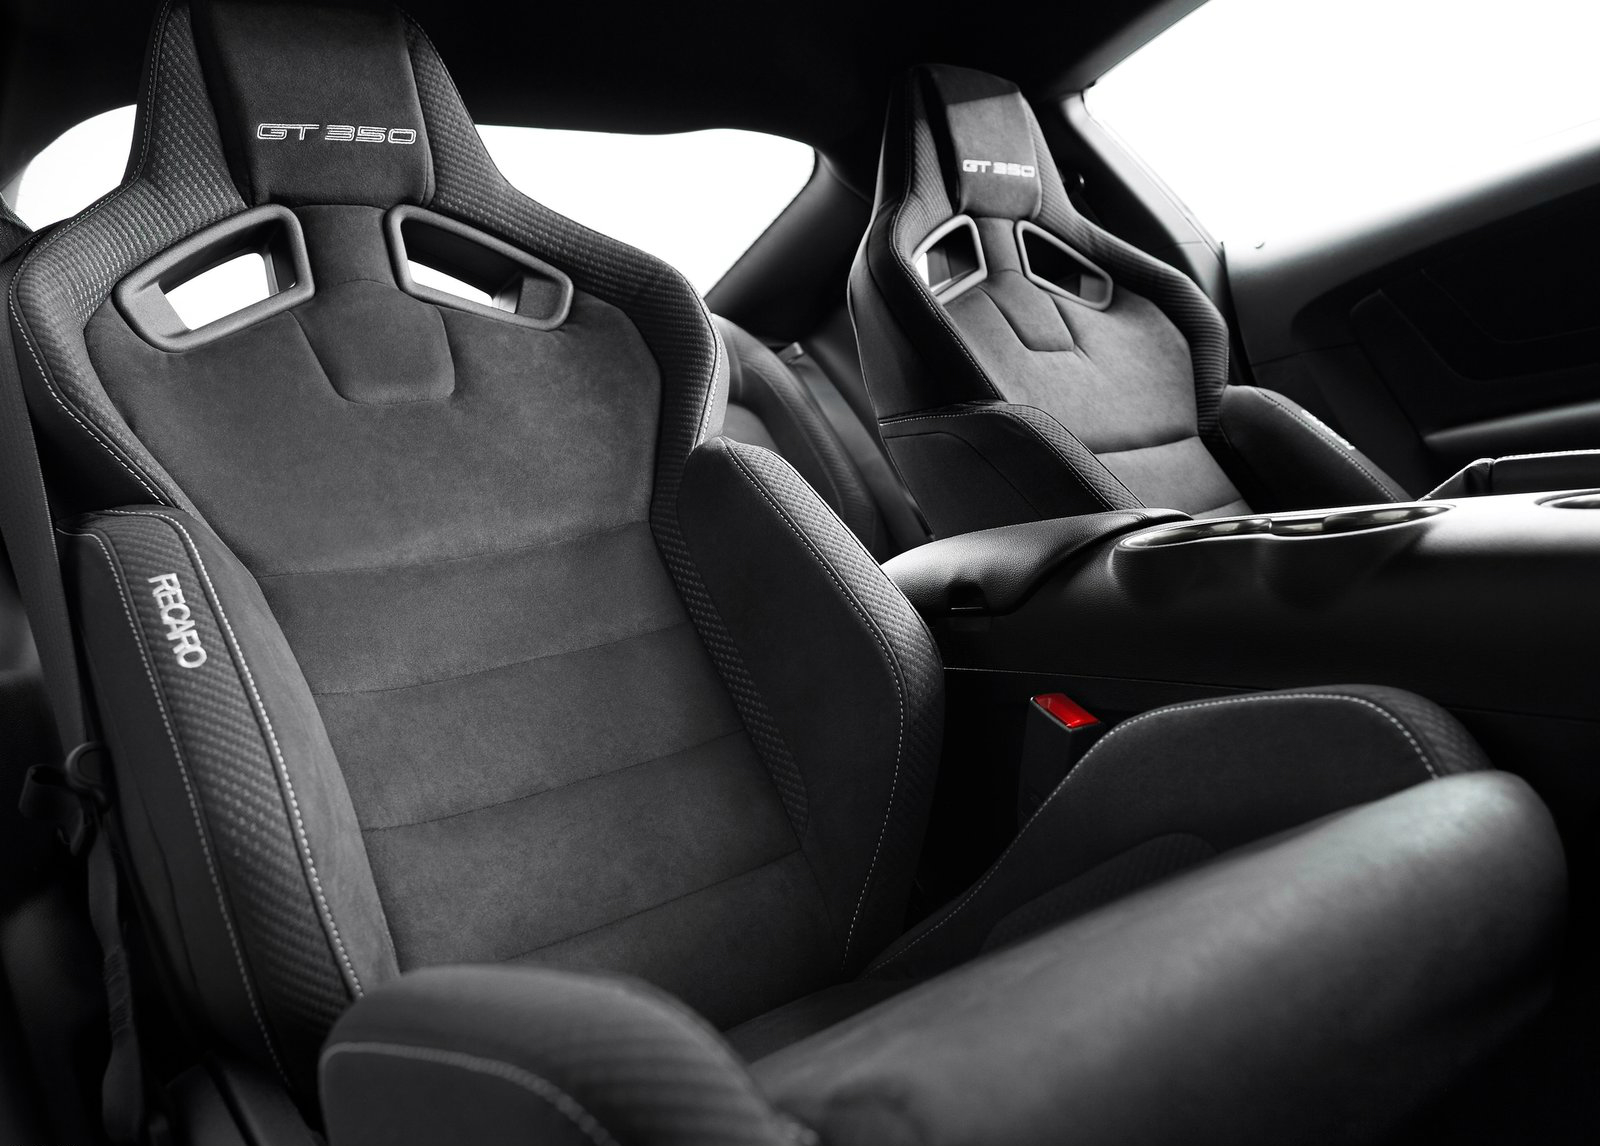 Recaro At Detroit 2016 Shelby Gt350 Mustang Performance Luxury Seats Coming Autoevolution